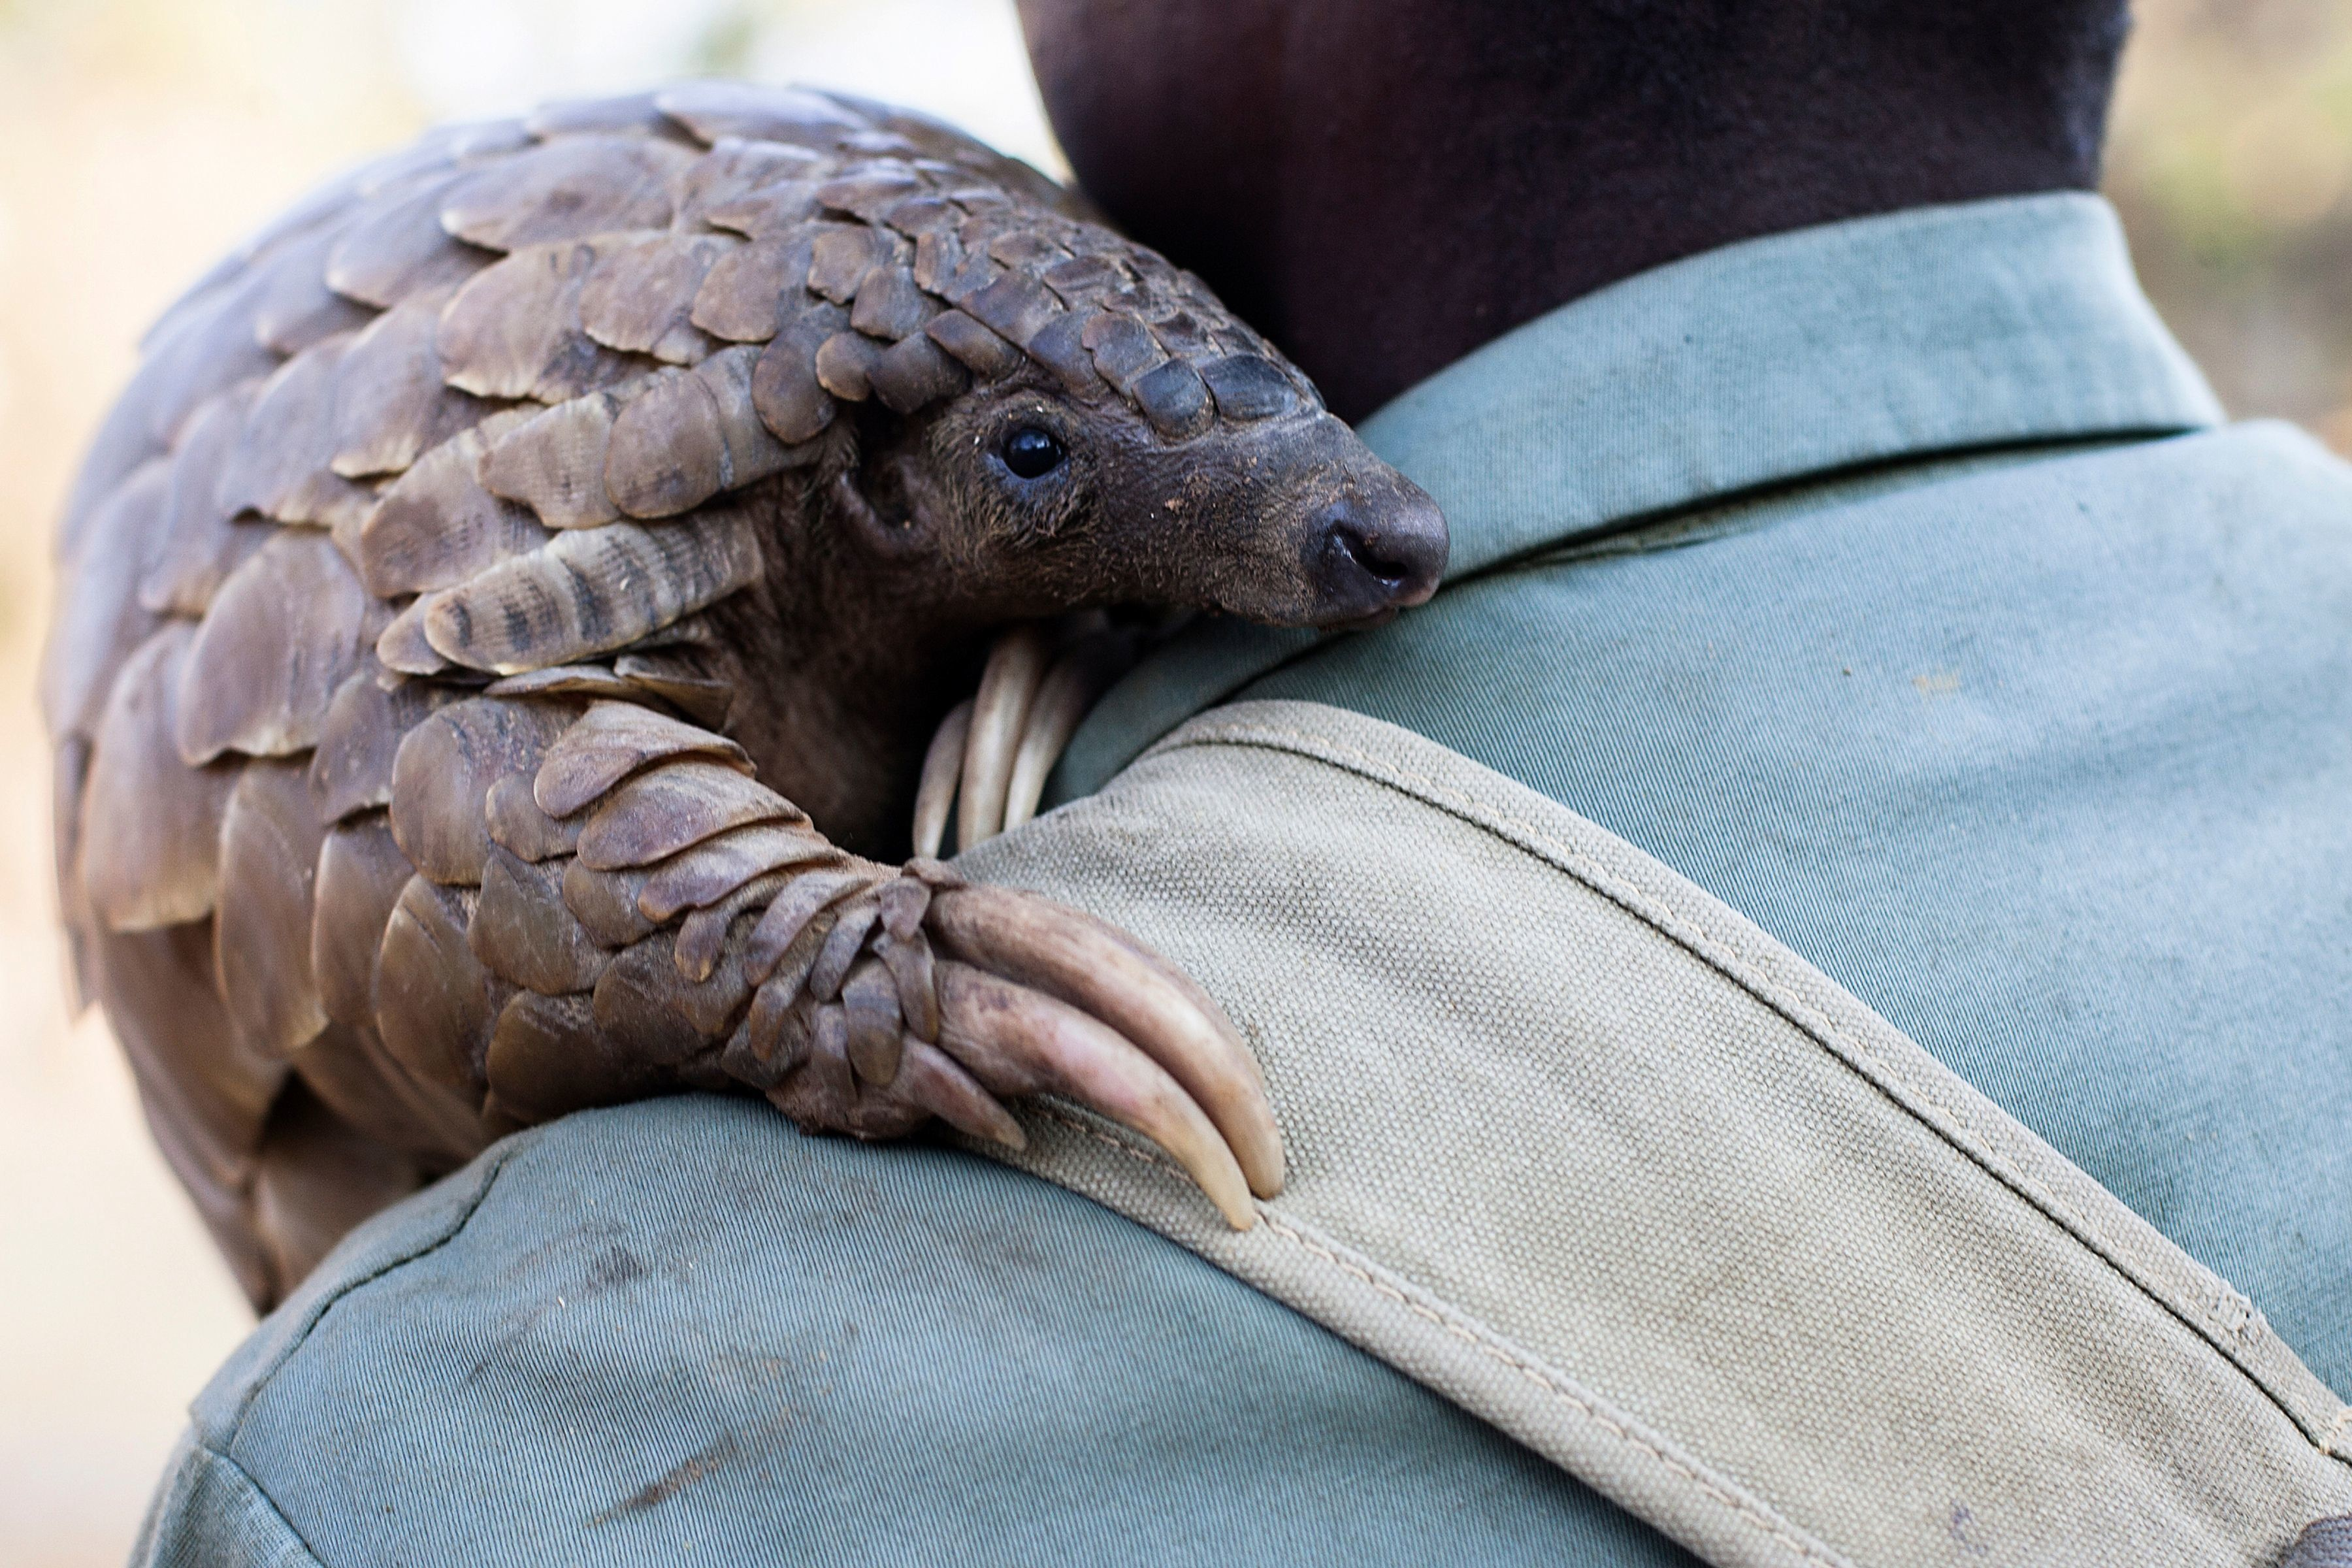 TO GO WITH AFP STORY BY SUSAN NJANJI Zimbabwe game reserve guide Matius Mhambe holds 'Marimba', a female pangolin weighing 10kgs that has been nine years in care at Wild Is Life animal sanctuary just outside the country's capital Harare, on September 22, 2016. They are ordinarily reclusive and often don't make the headlines, but pangolins are the world's most heavily trafficked mammal and conservationists want their protection scaled up. Demand for pangolin meat and body parts is fuelling a bloodbath and driving the secretive scaly ant-eating mammals to near extinction. / AFP / Jekesai Njikizana        (Photo credit should read JEKESAI NJIKIZANA/AFP/Getty Images)